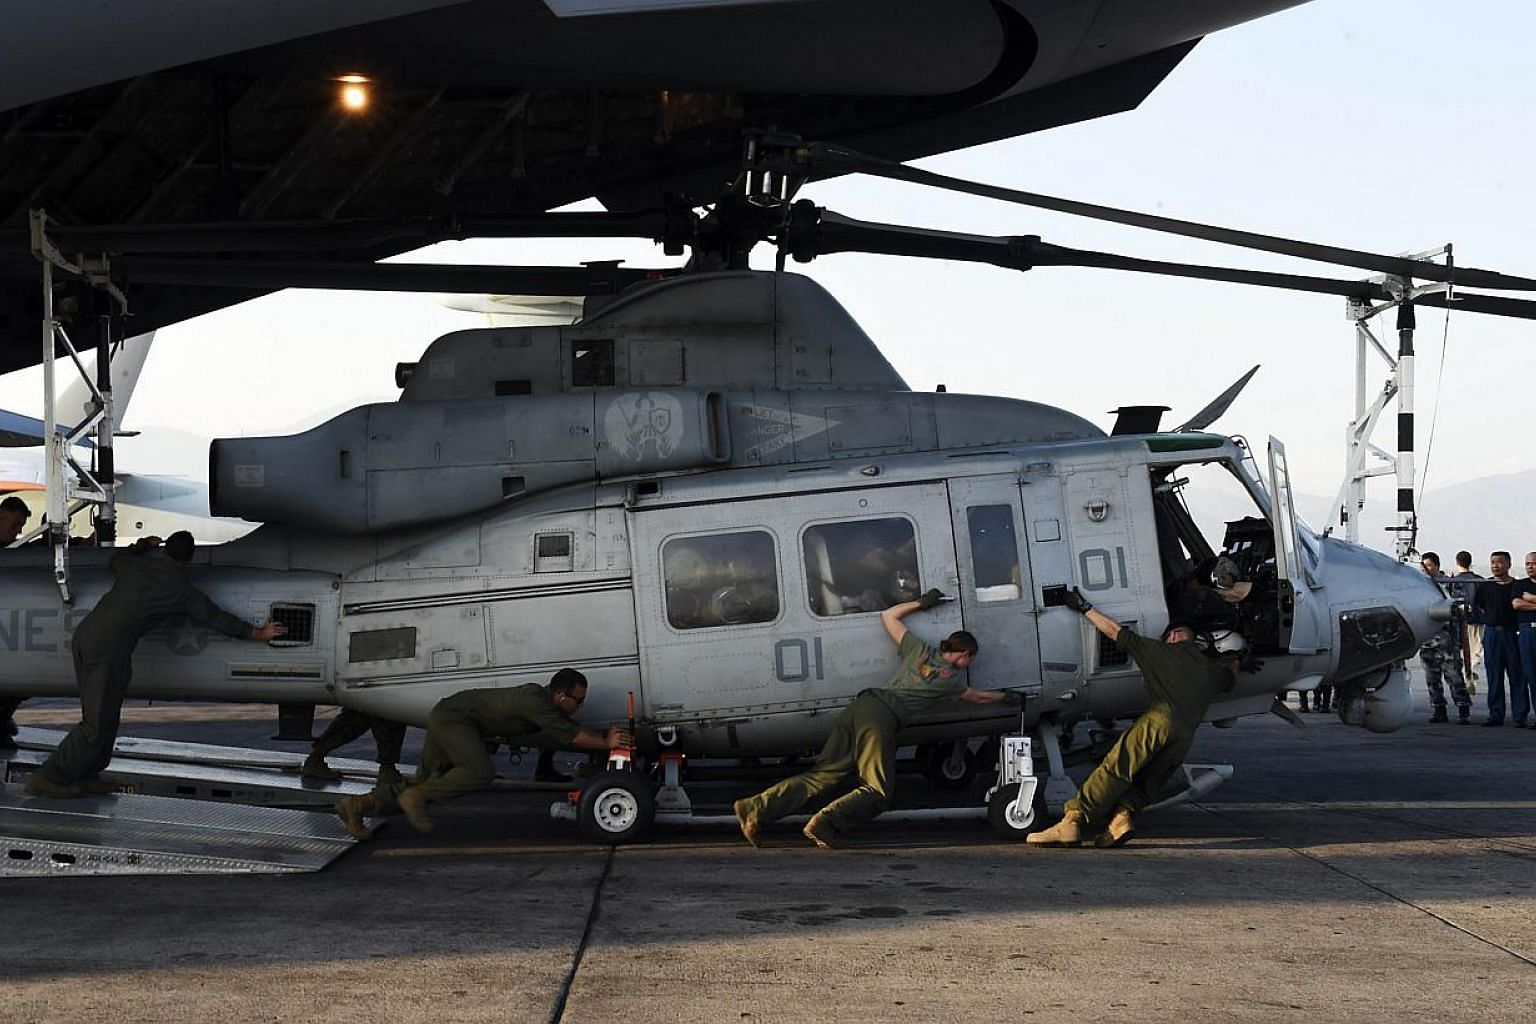 A photo taken on May 3, 2015, shows the crew of a US C-17 military transport plane unloading a Huey helicopter at Kathmandu's international airport in Kathmandu.The US military said Friday it did not expect to find any survivors after locating